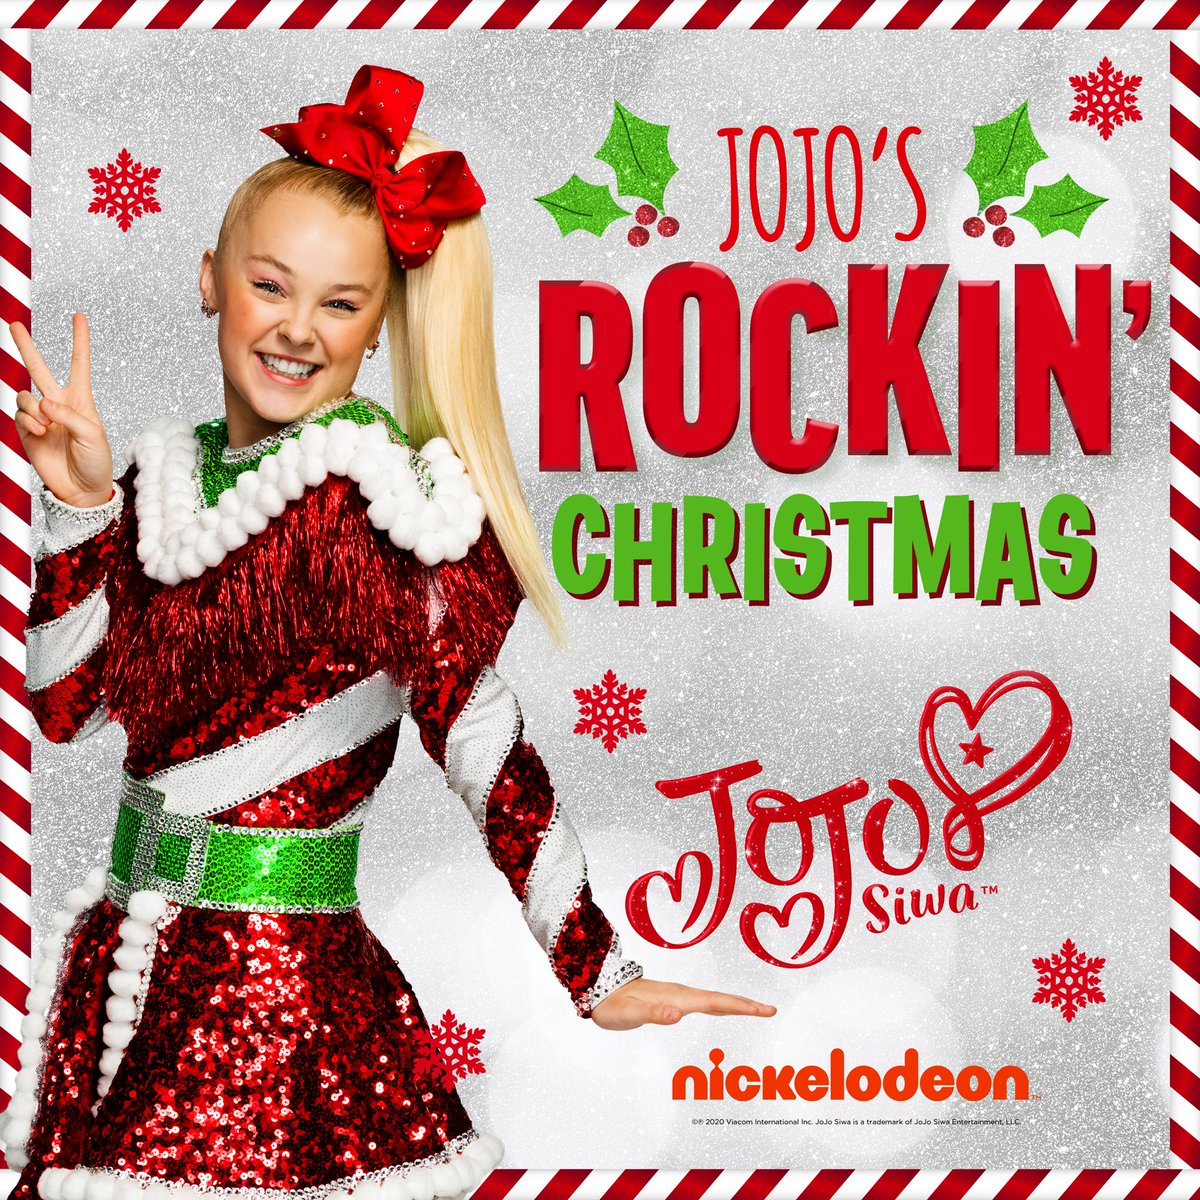 Get in the holiday spirit with @itsjojosiwa's Christmas EP! 🎄   We look forward to seeing JoJo at Spectrum Center in 2021!  🎵: